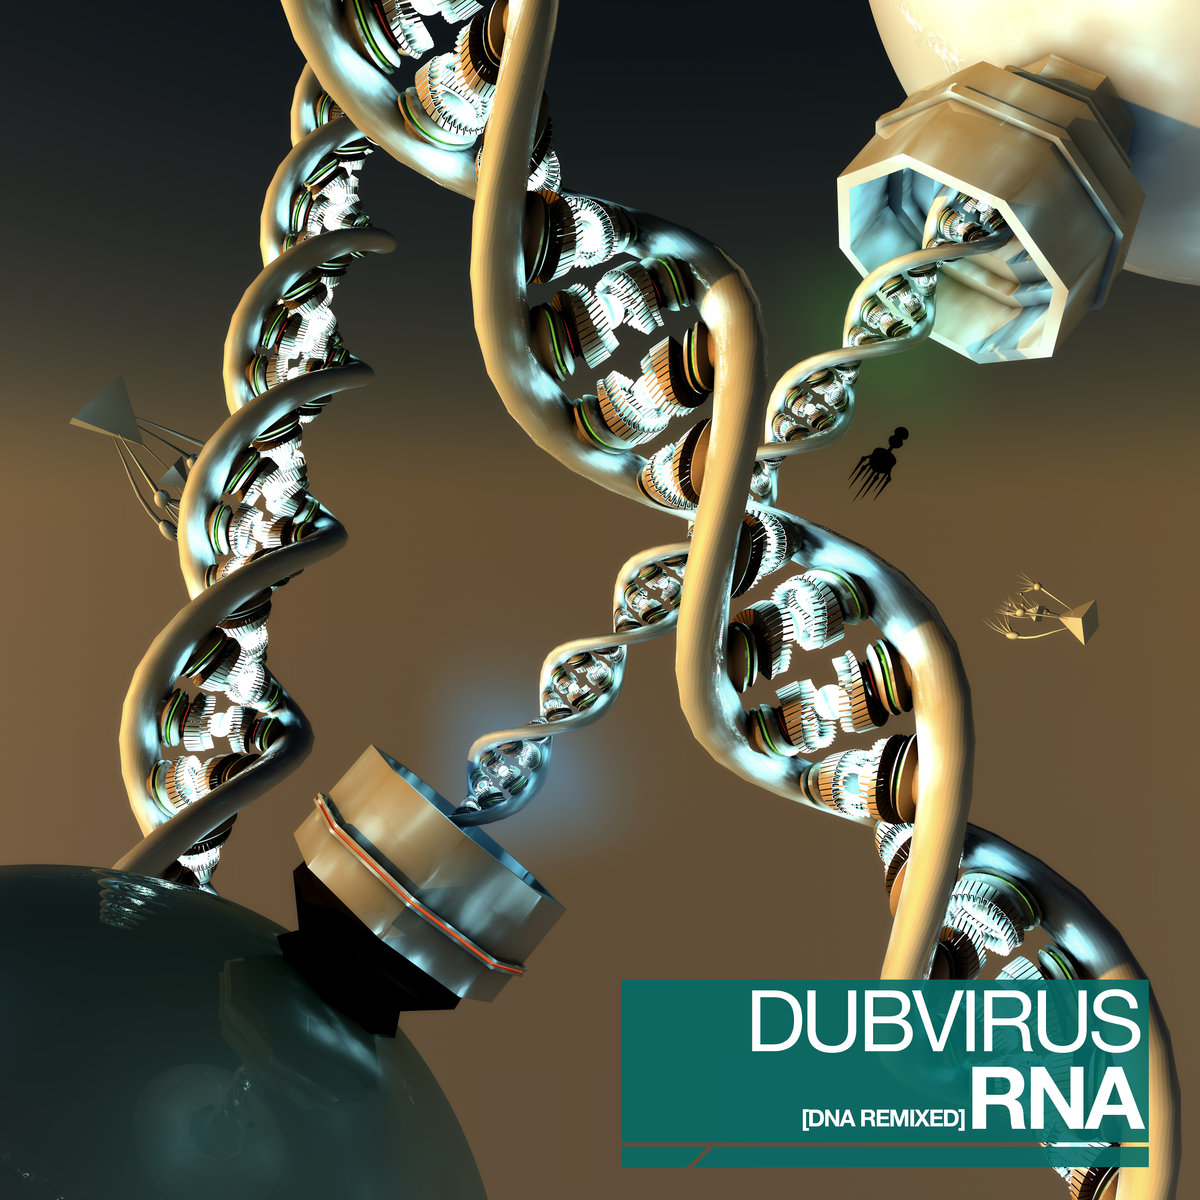 Dubvirus - Bridging The Gap (sAuce Remix) @ 'RNA (DNA Remixed)' album (bass, dubvirus)